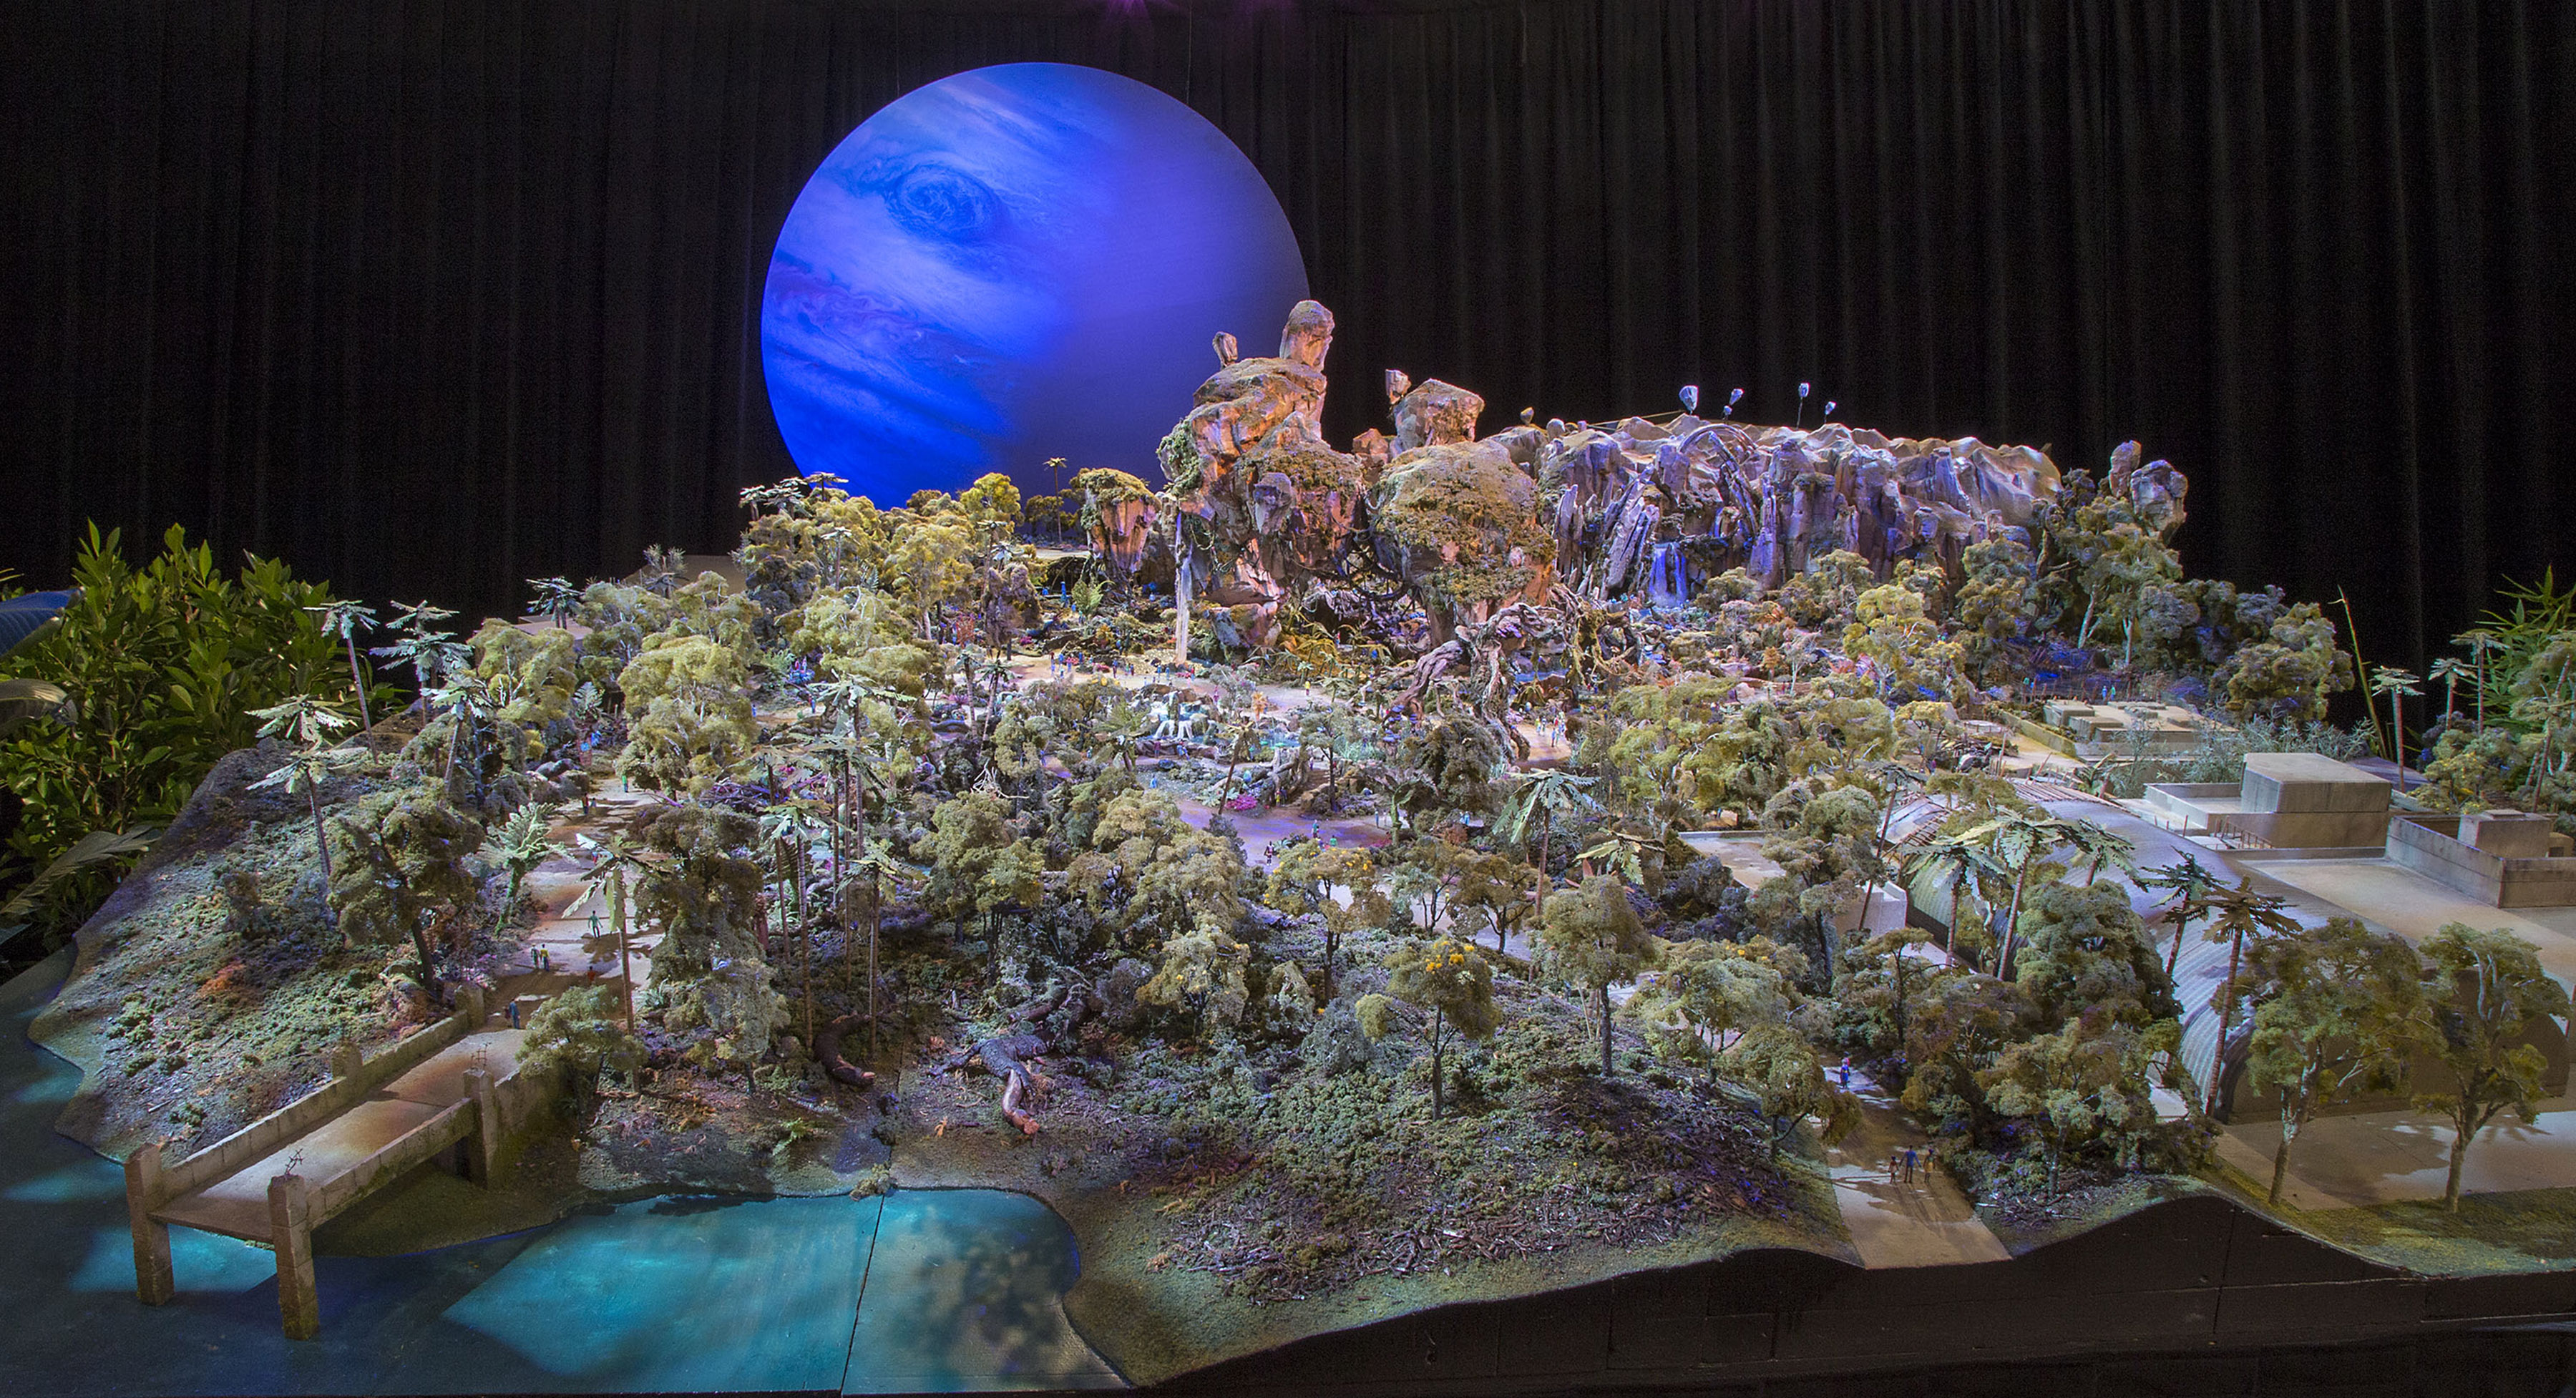 AVATAR land model at D23 EXPO